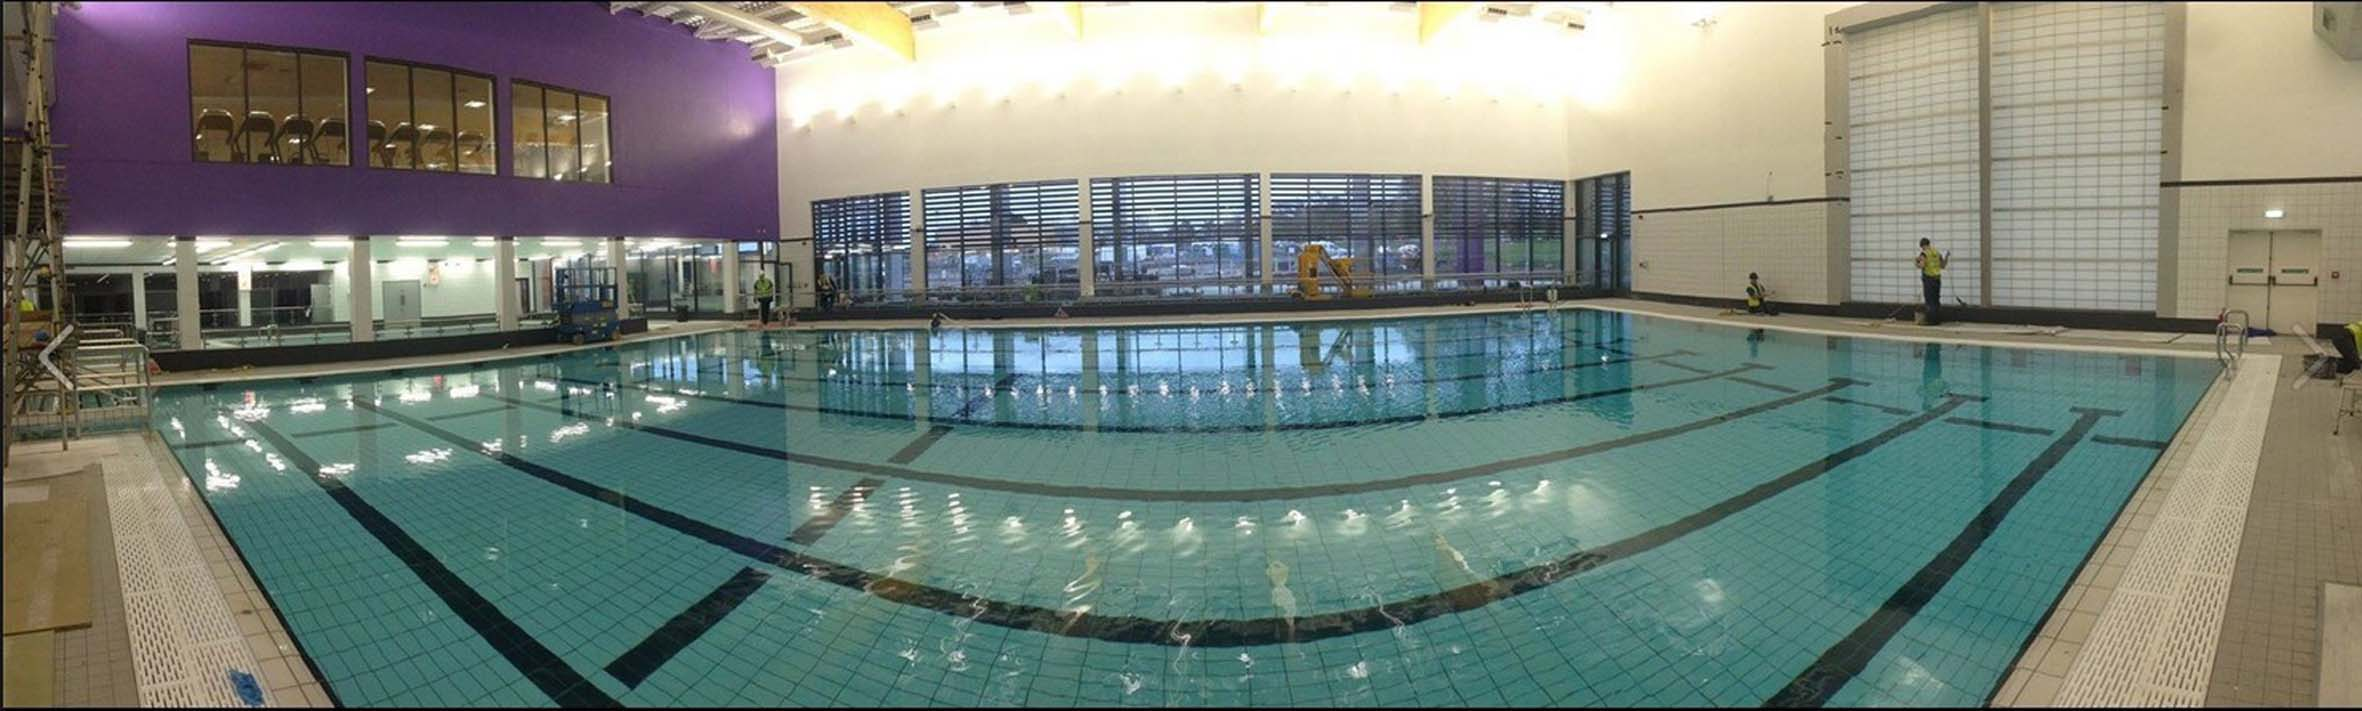 Weber Rend Ocr By Saint Gobain Weber Saves Time And Money At New Flitwick Leisure Centre